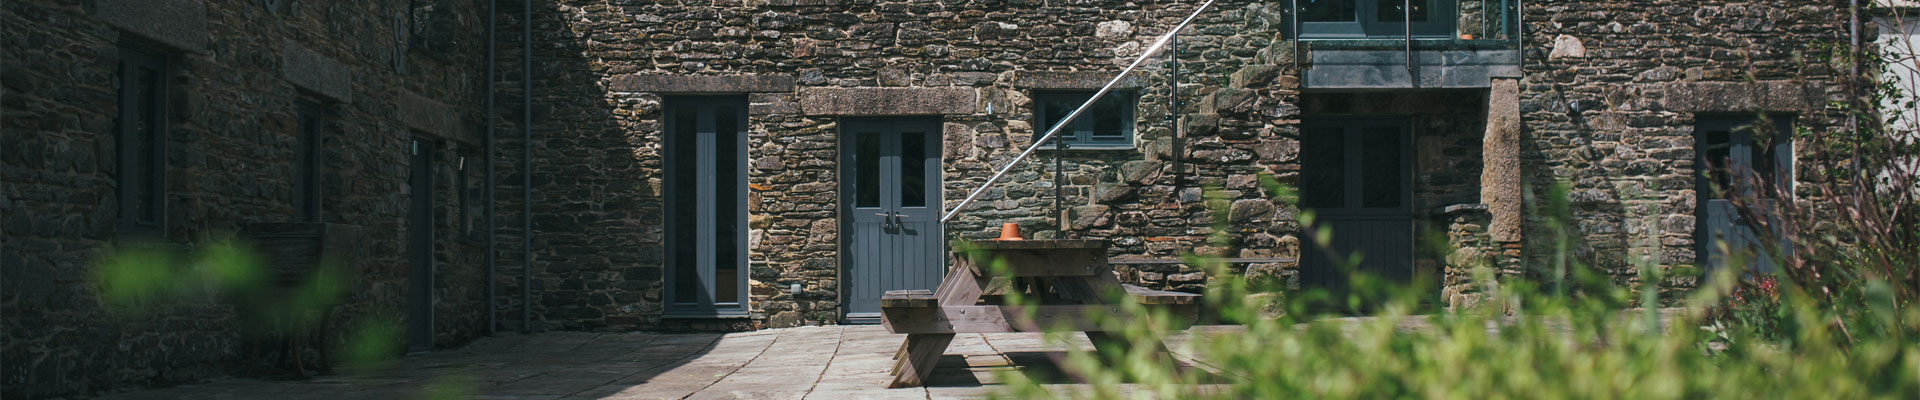 Photo of the courtyard area at Tregulland Barn